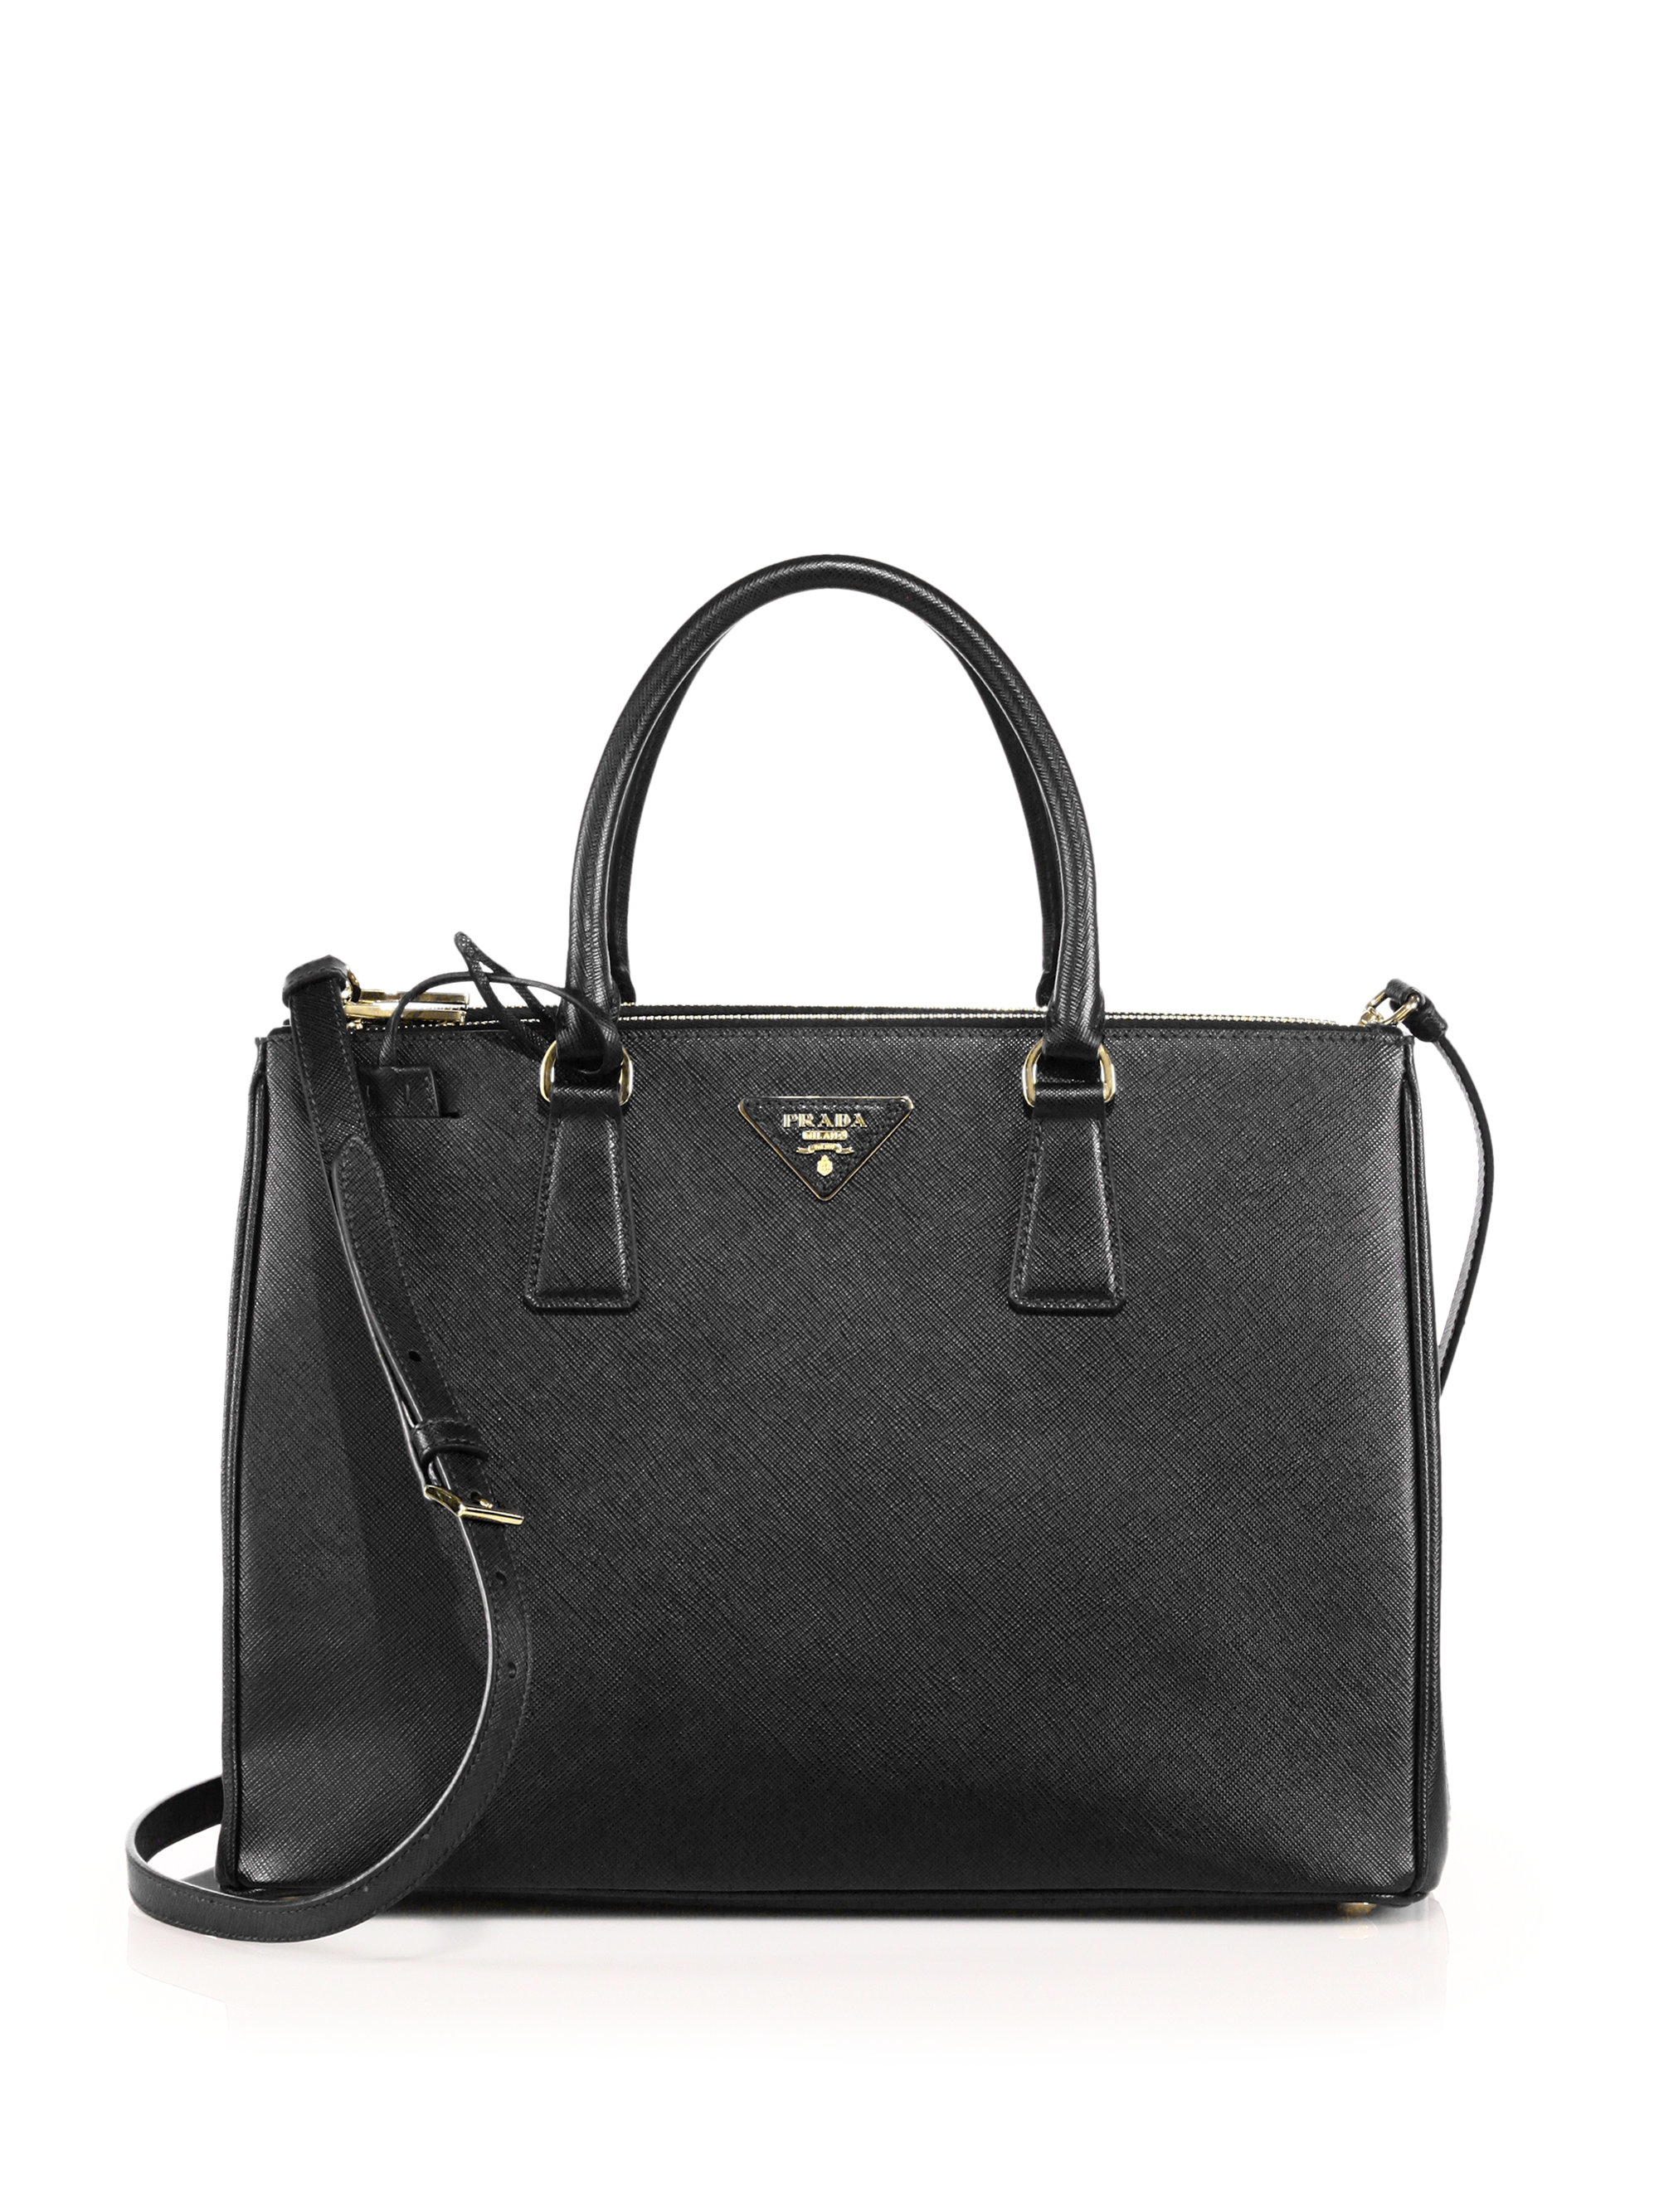 3fd1e88c4ead Prada Medium Saffiano Double Zip Bag | Stanford Center for ...